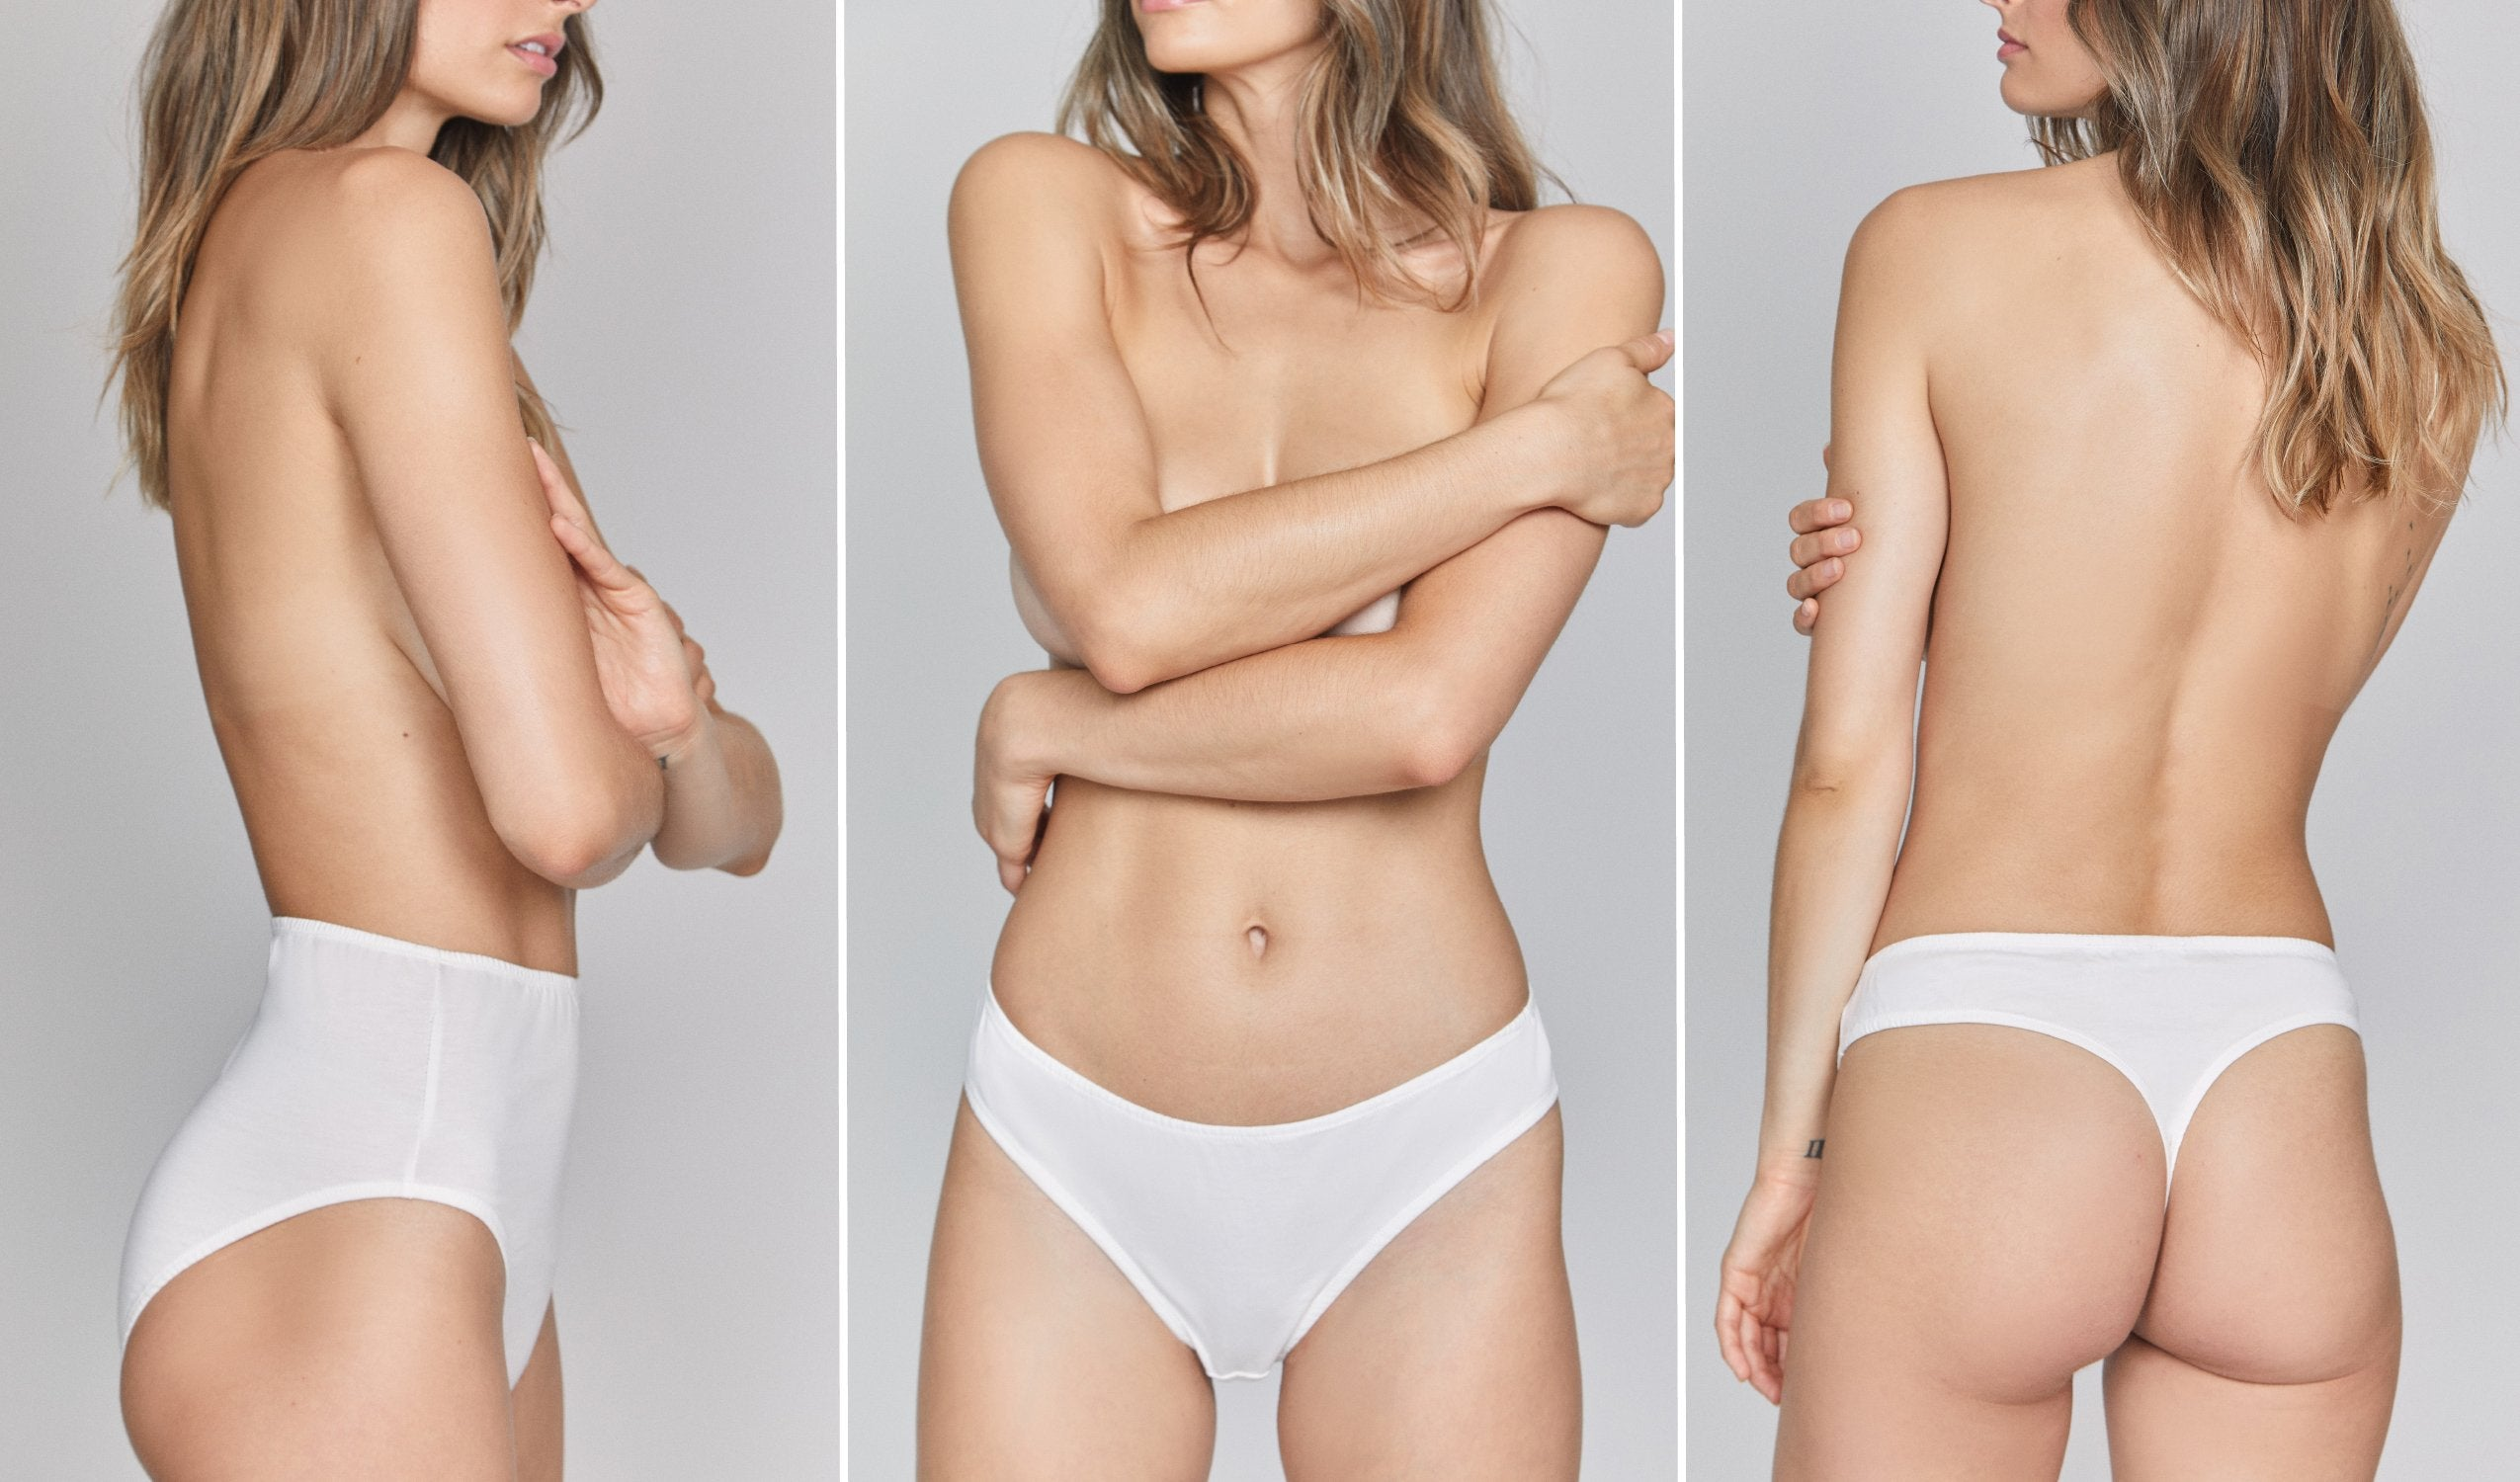 white organic cotton underwear on a woman in three styles, high waist, bikini and thong